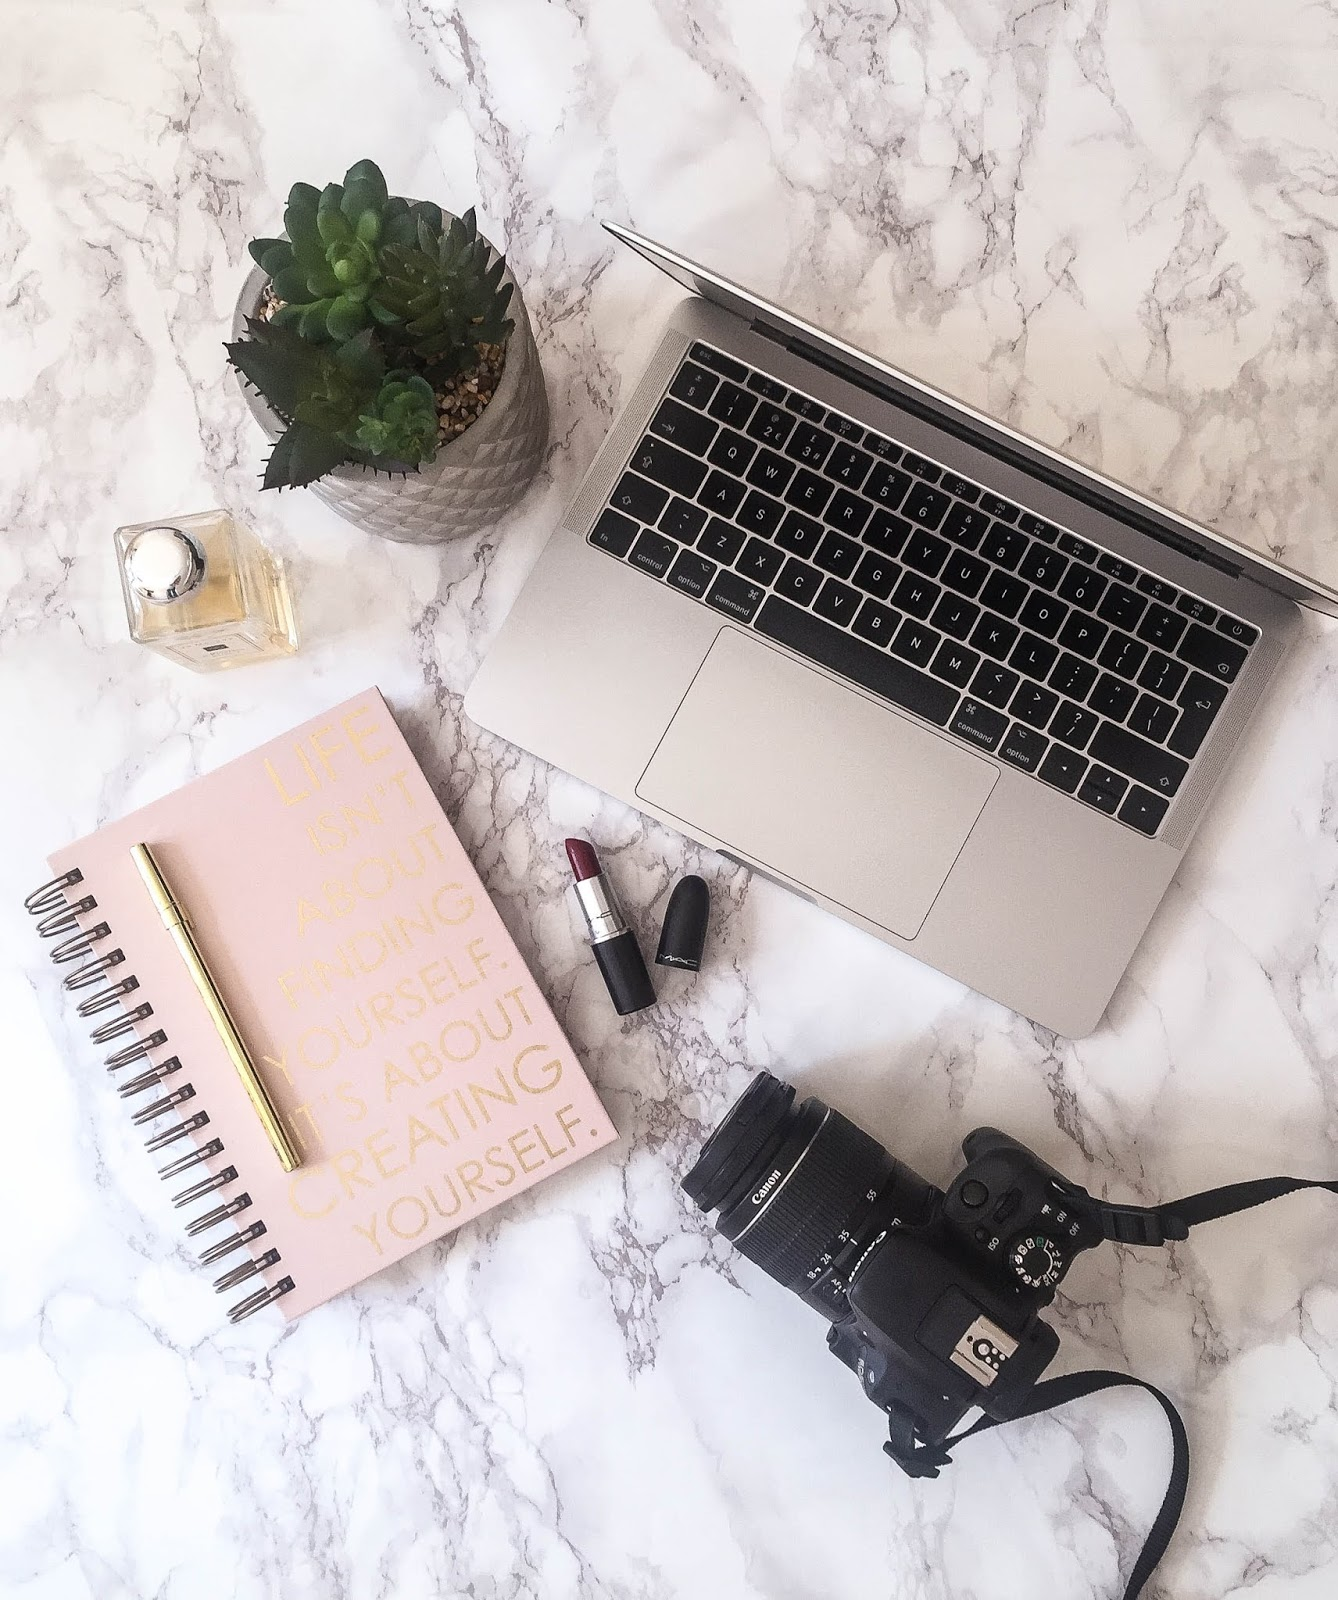 Working With Brands - A Guide For Smaller Bloggers - How To Deal With Brand/PR Emails: Part 1 - Unpaid Collaborations